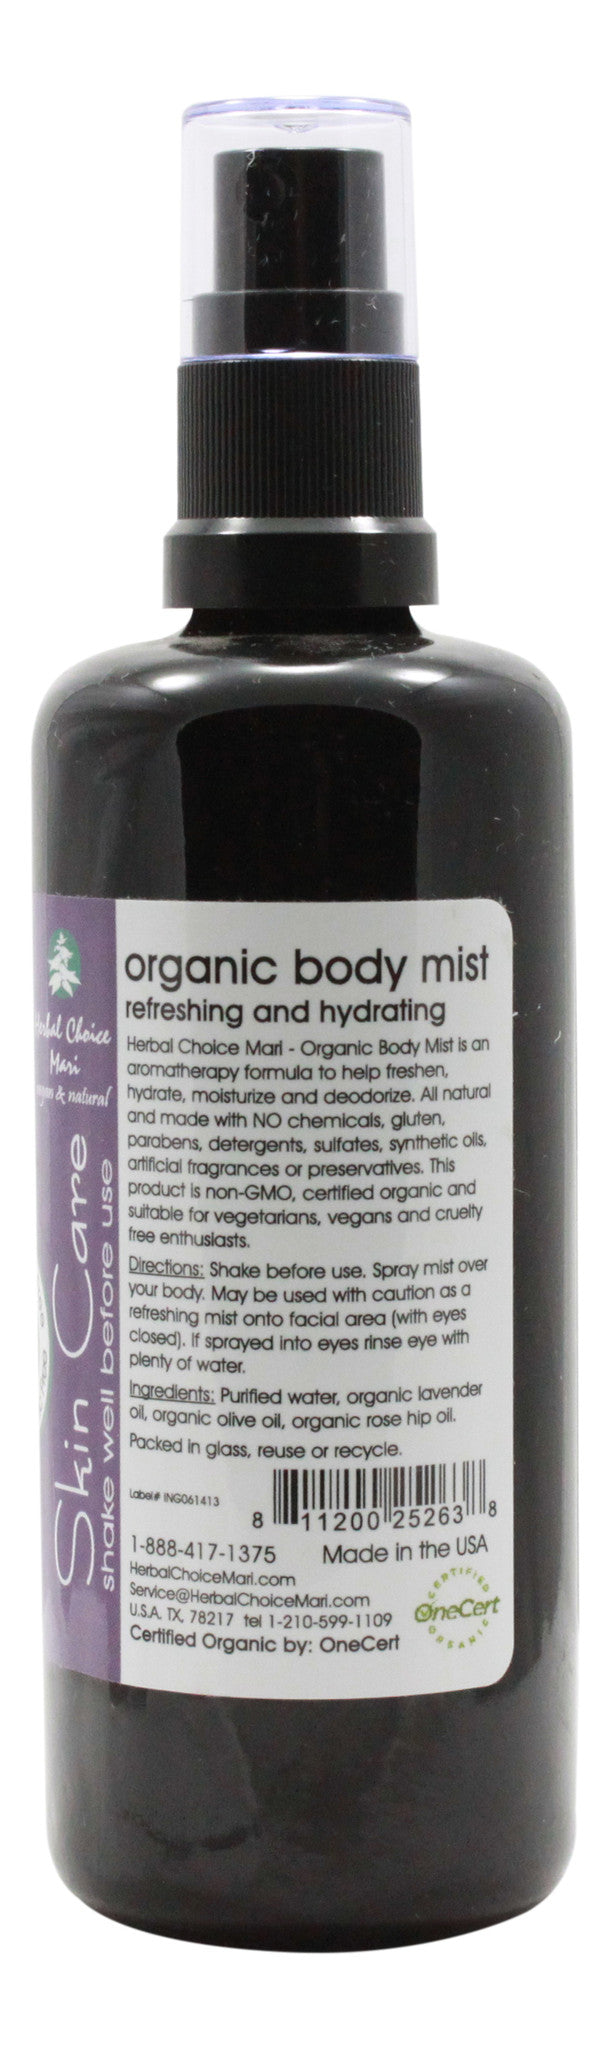 Organic Body Mist - Lavender - 3.4 oz Spray - Info